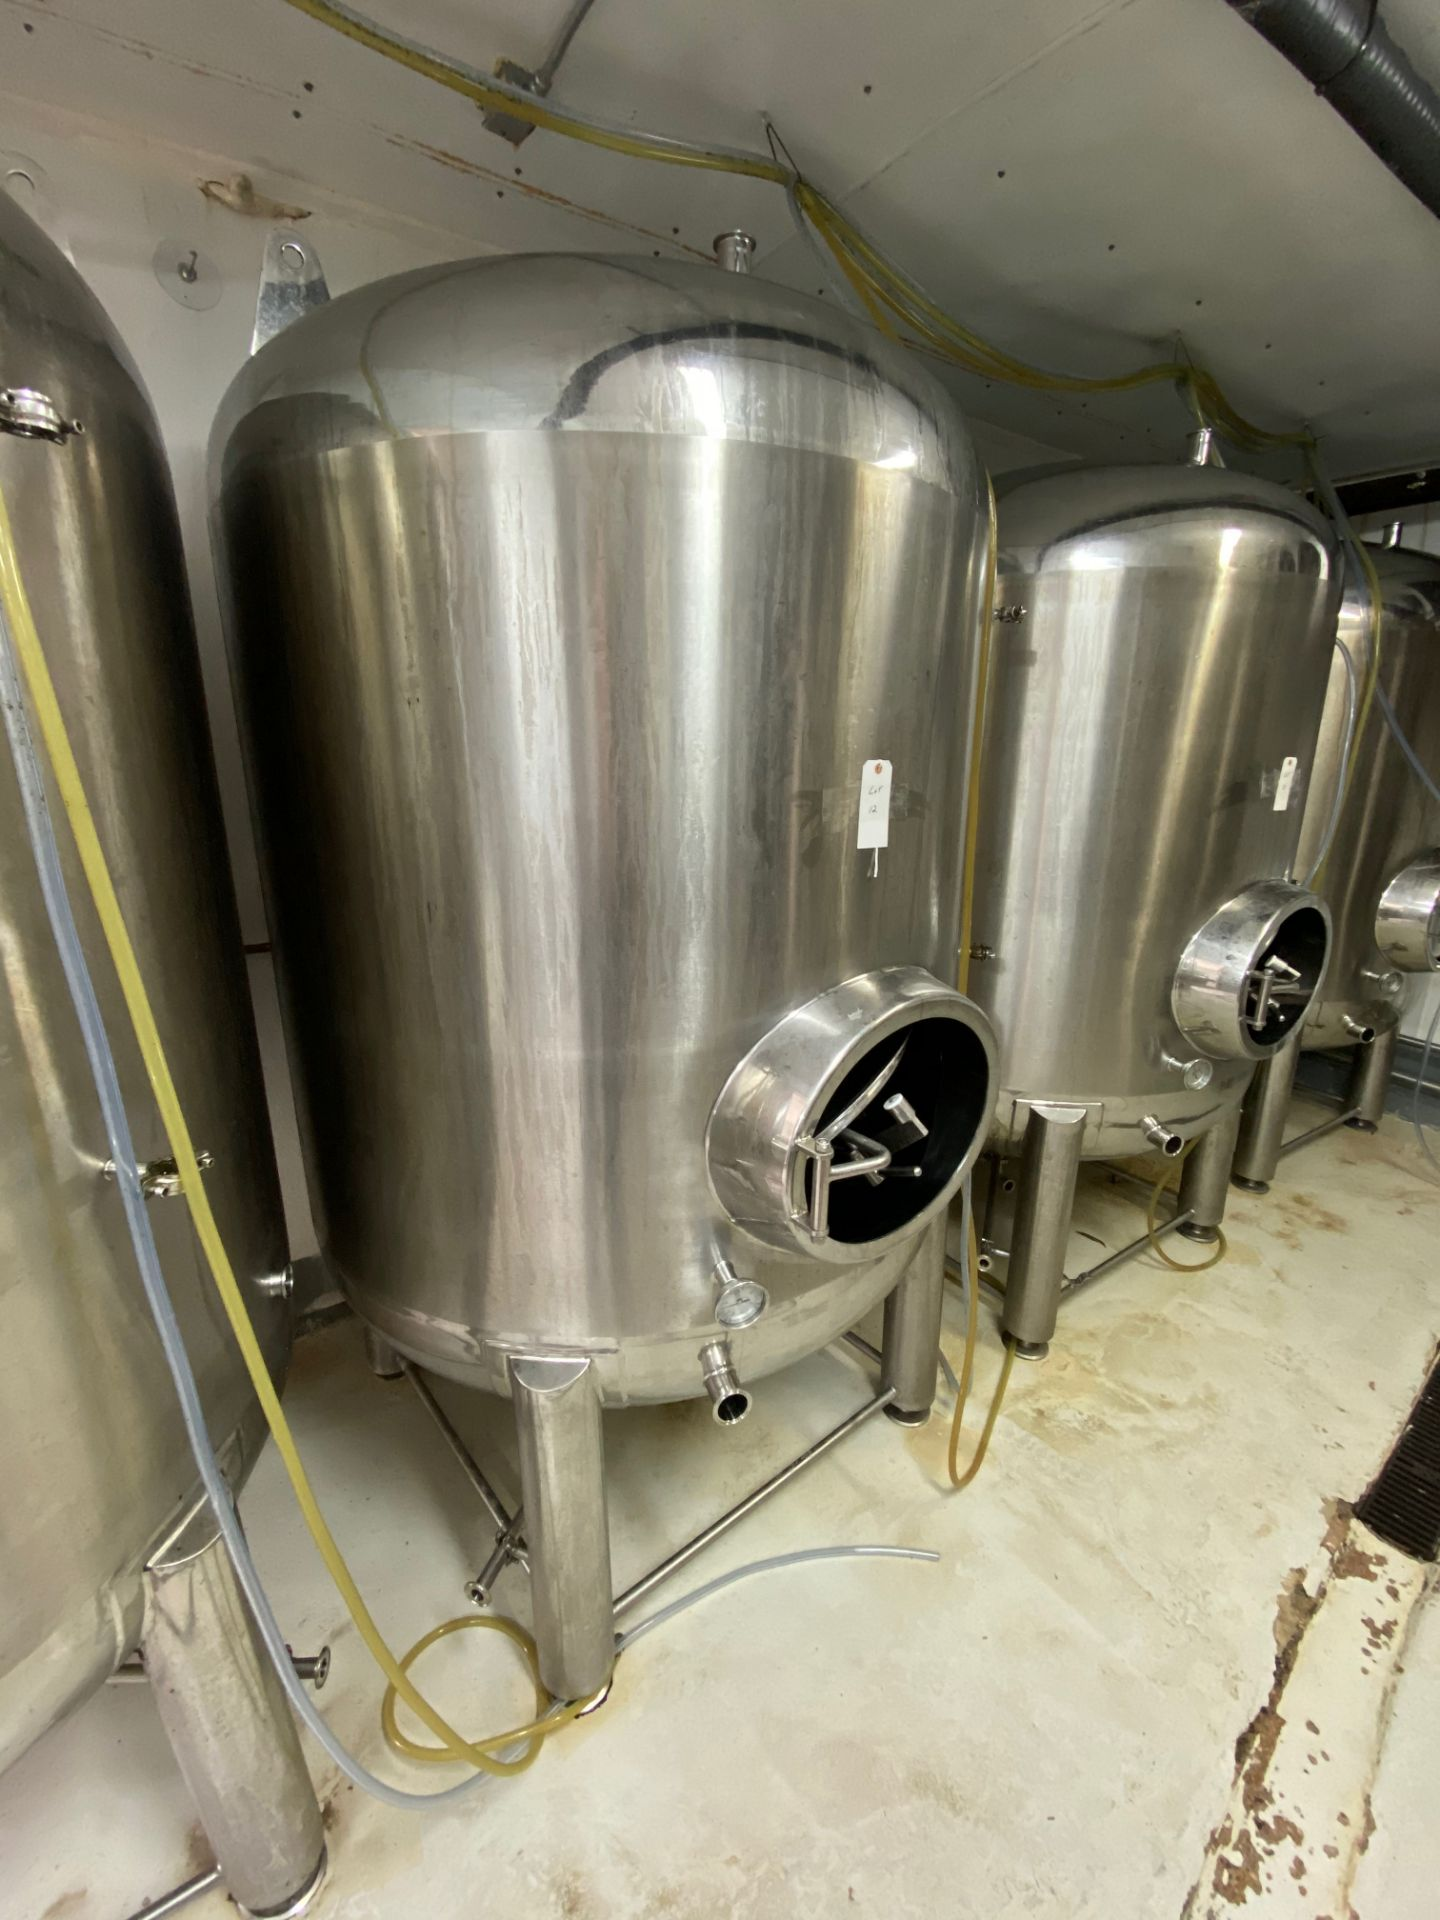 Lot 12 - 2014 Criveller 20 BBL Brite Tank, 304 Stainless Steel, Single Wall, D | Sub to Bulk | Rig Fee: $350